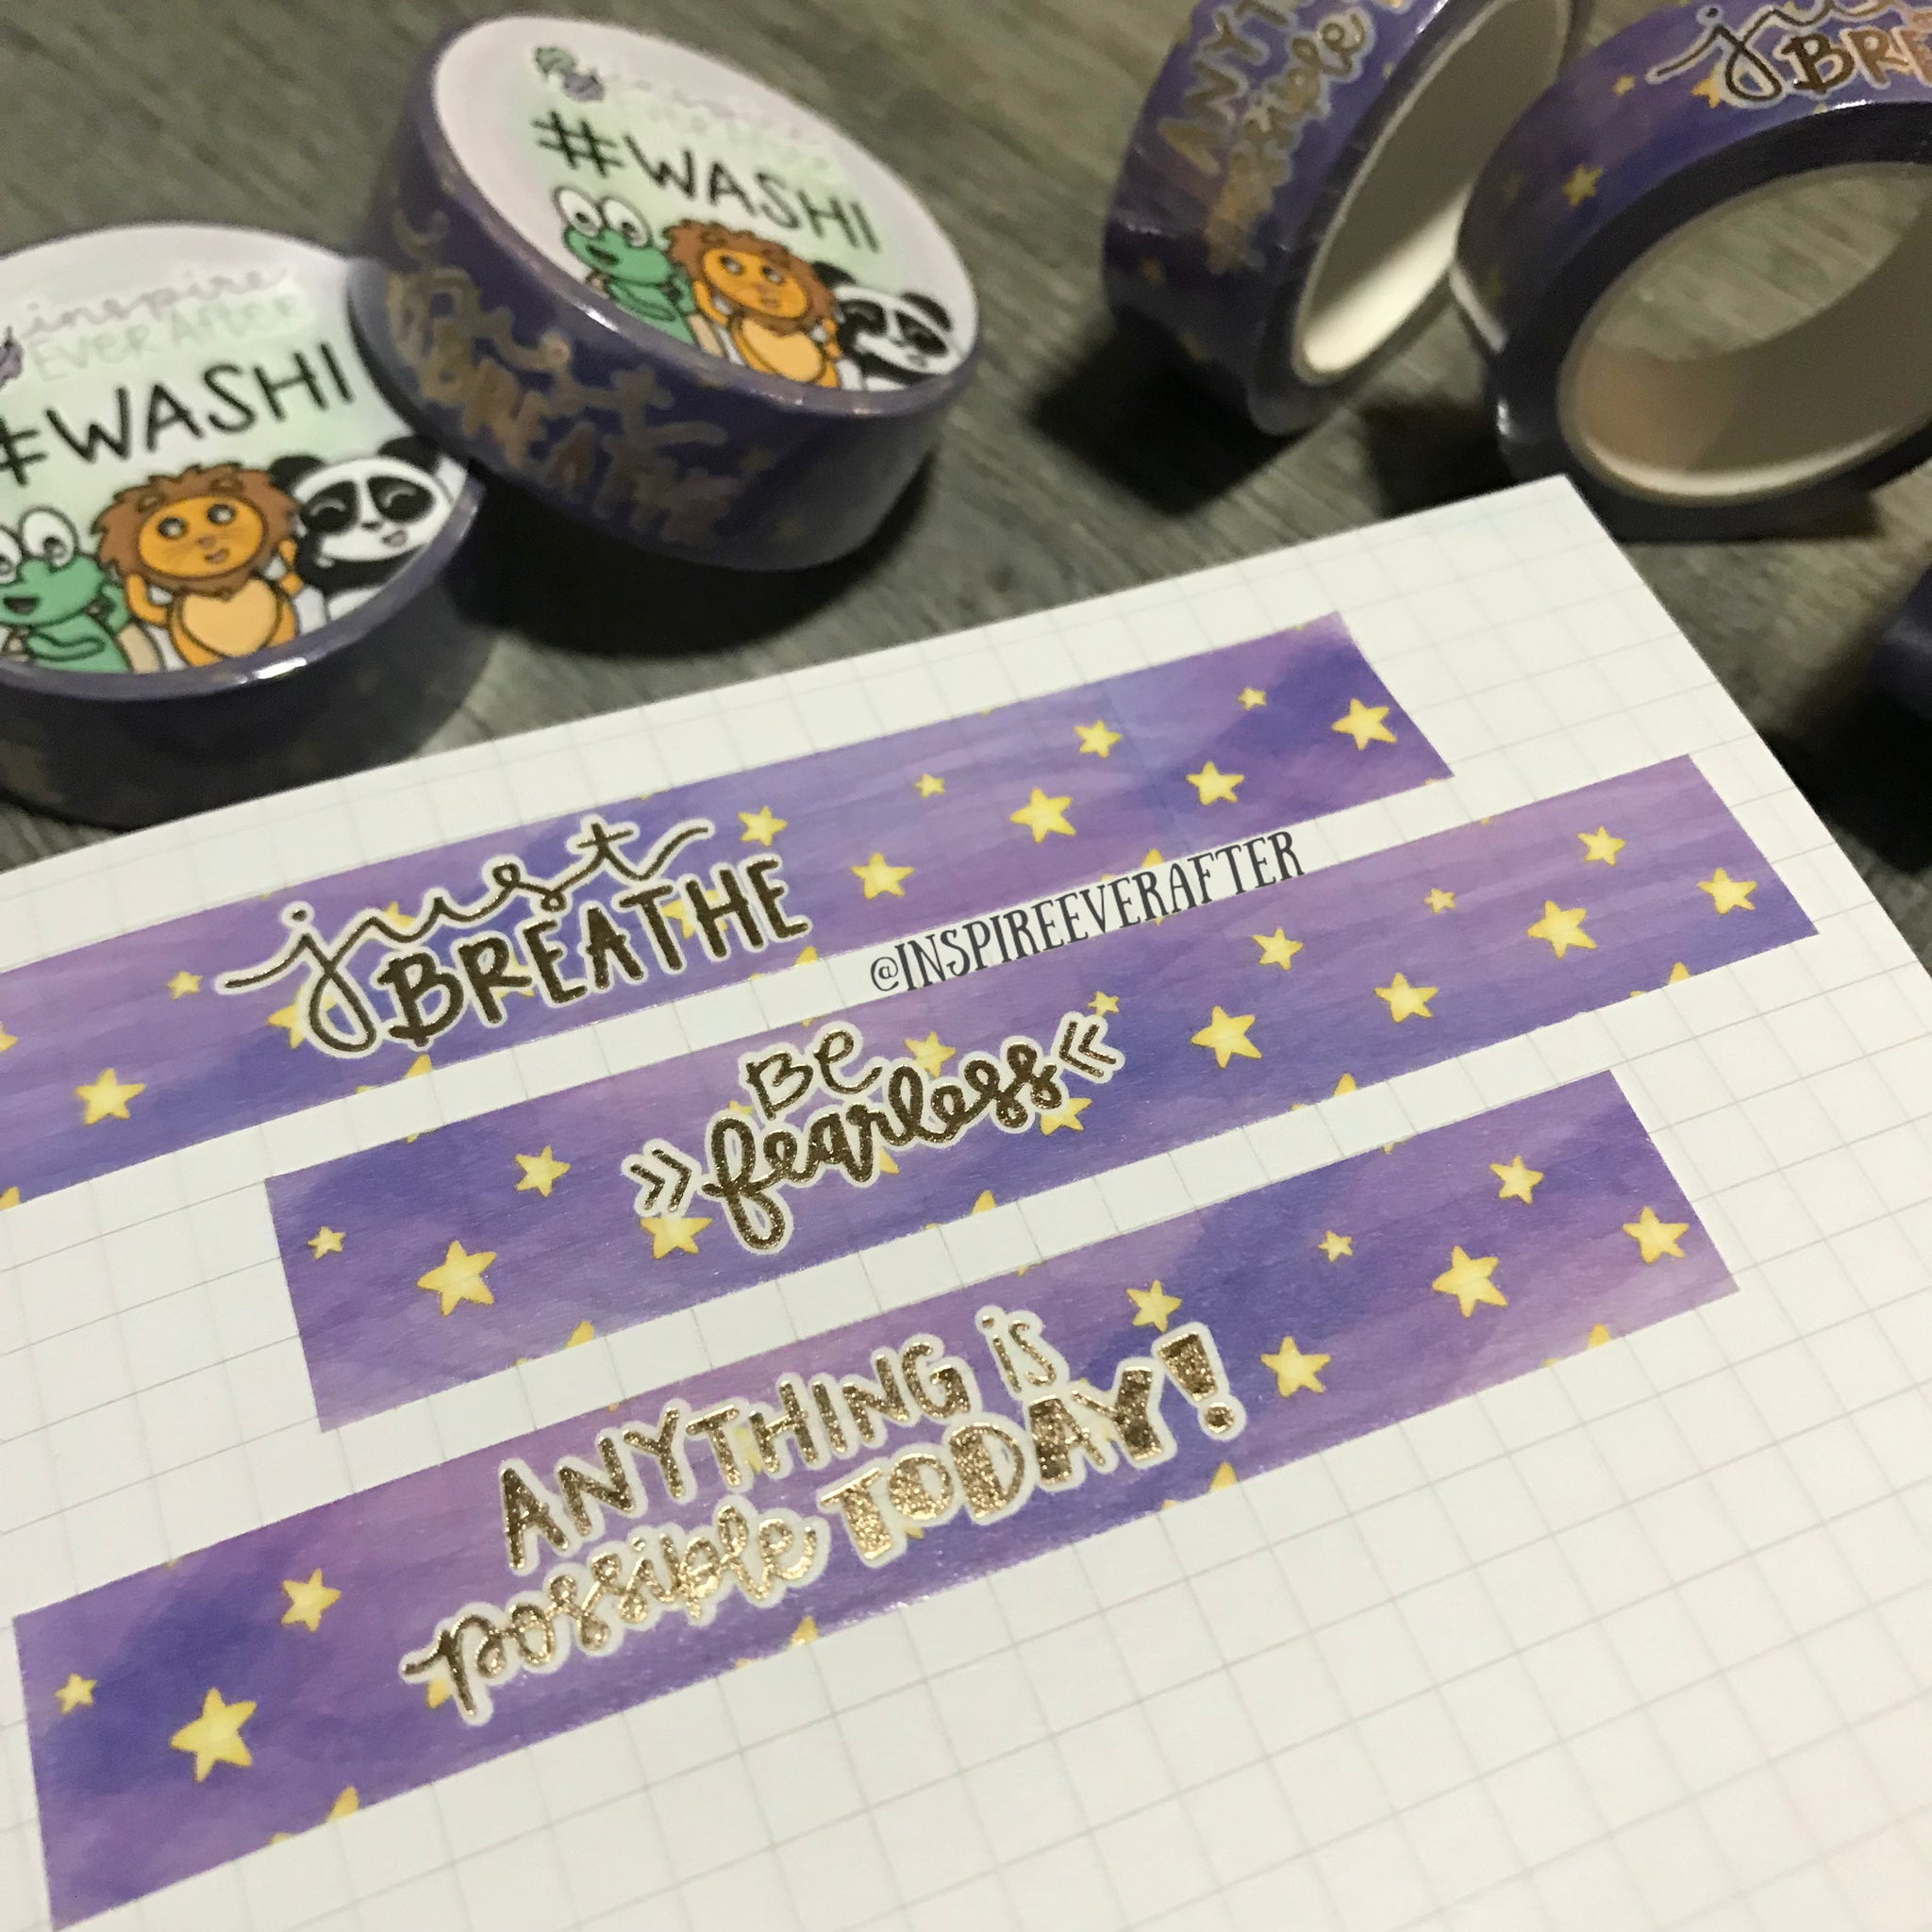 Starry Purple Galaxy Gold Foil Washi Roll ~ Hand Drawn Inspireology Positive Affirmation Planner Accessories